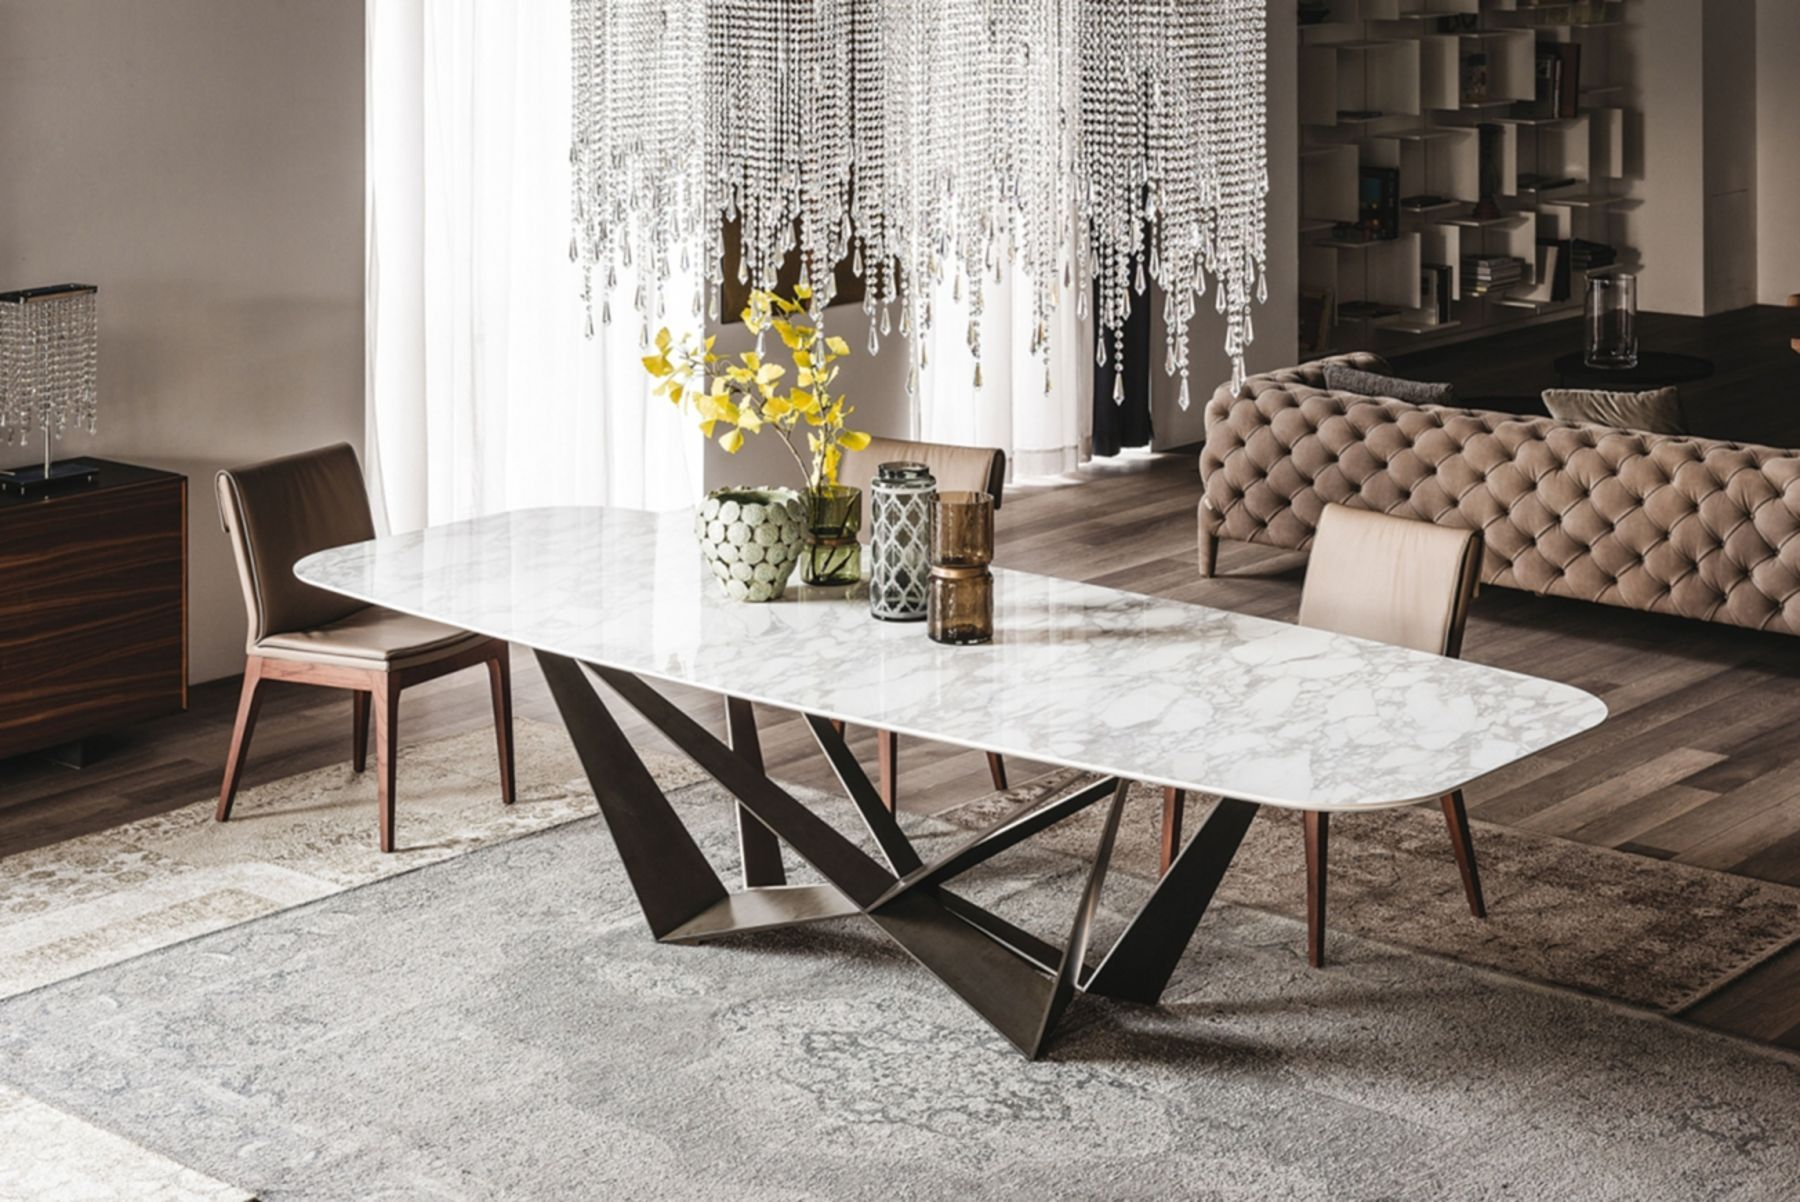 12 Contemporary Dining Table Design Ideas For Your Dining Room Comfort In 2020 Dining Table Marble Contemporary Dining Table Luxury Dining Room